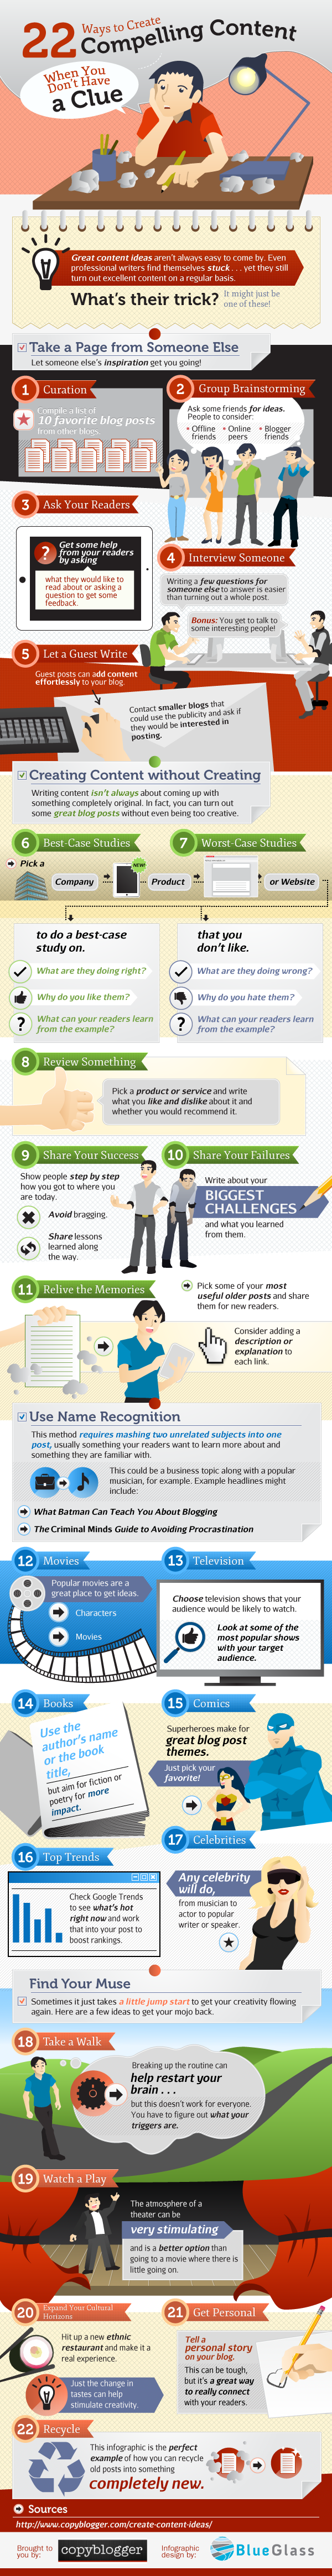 Vivid Content Marketing Infographic 22 Ways To Create Content